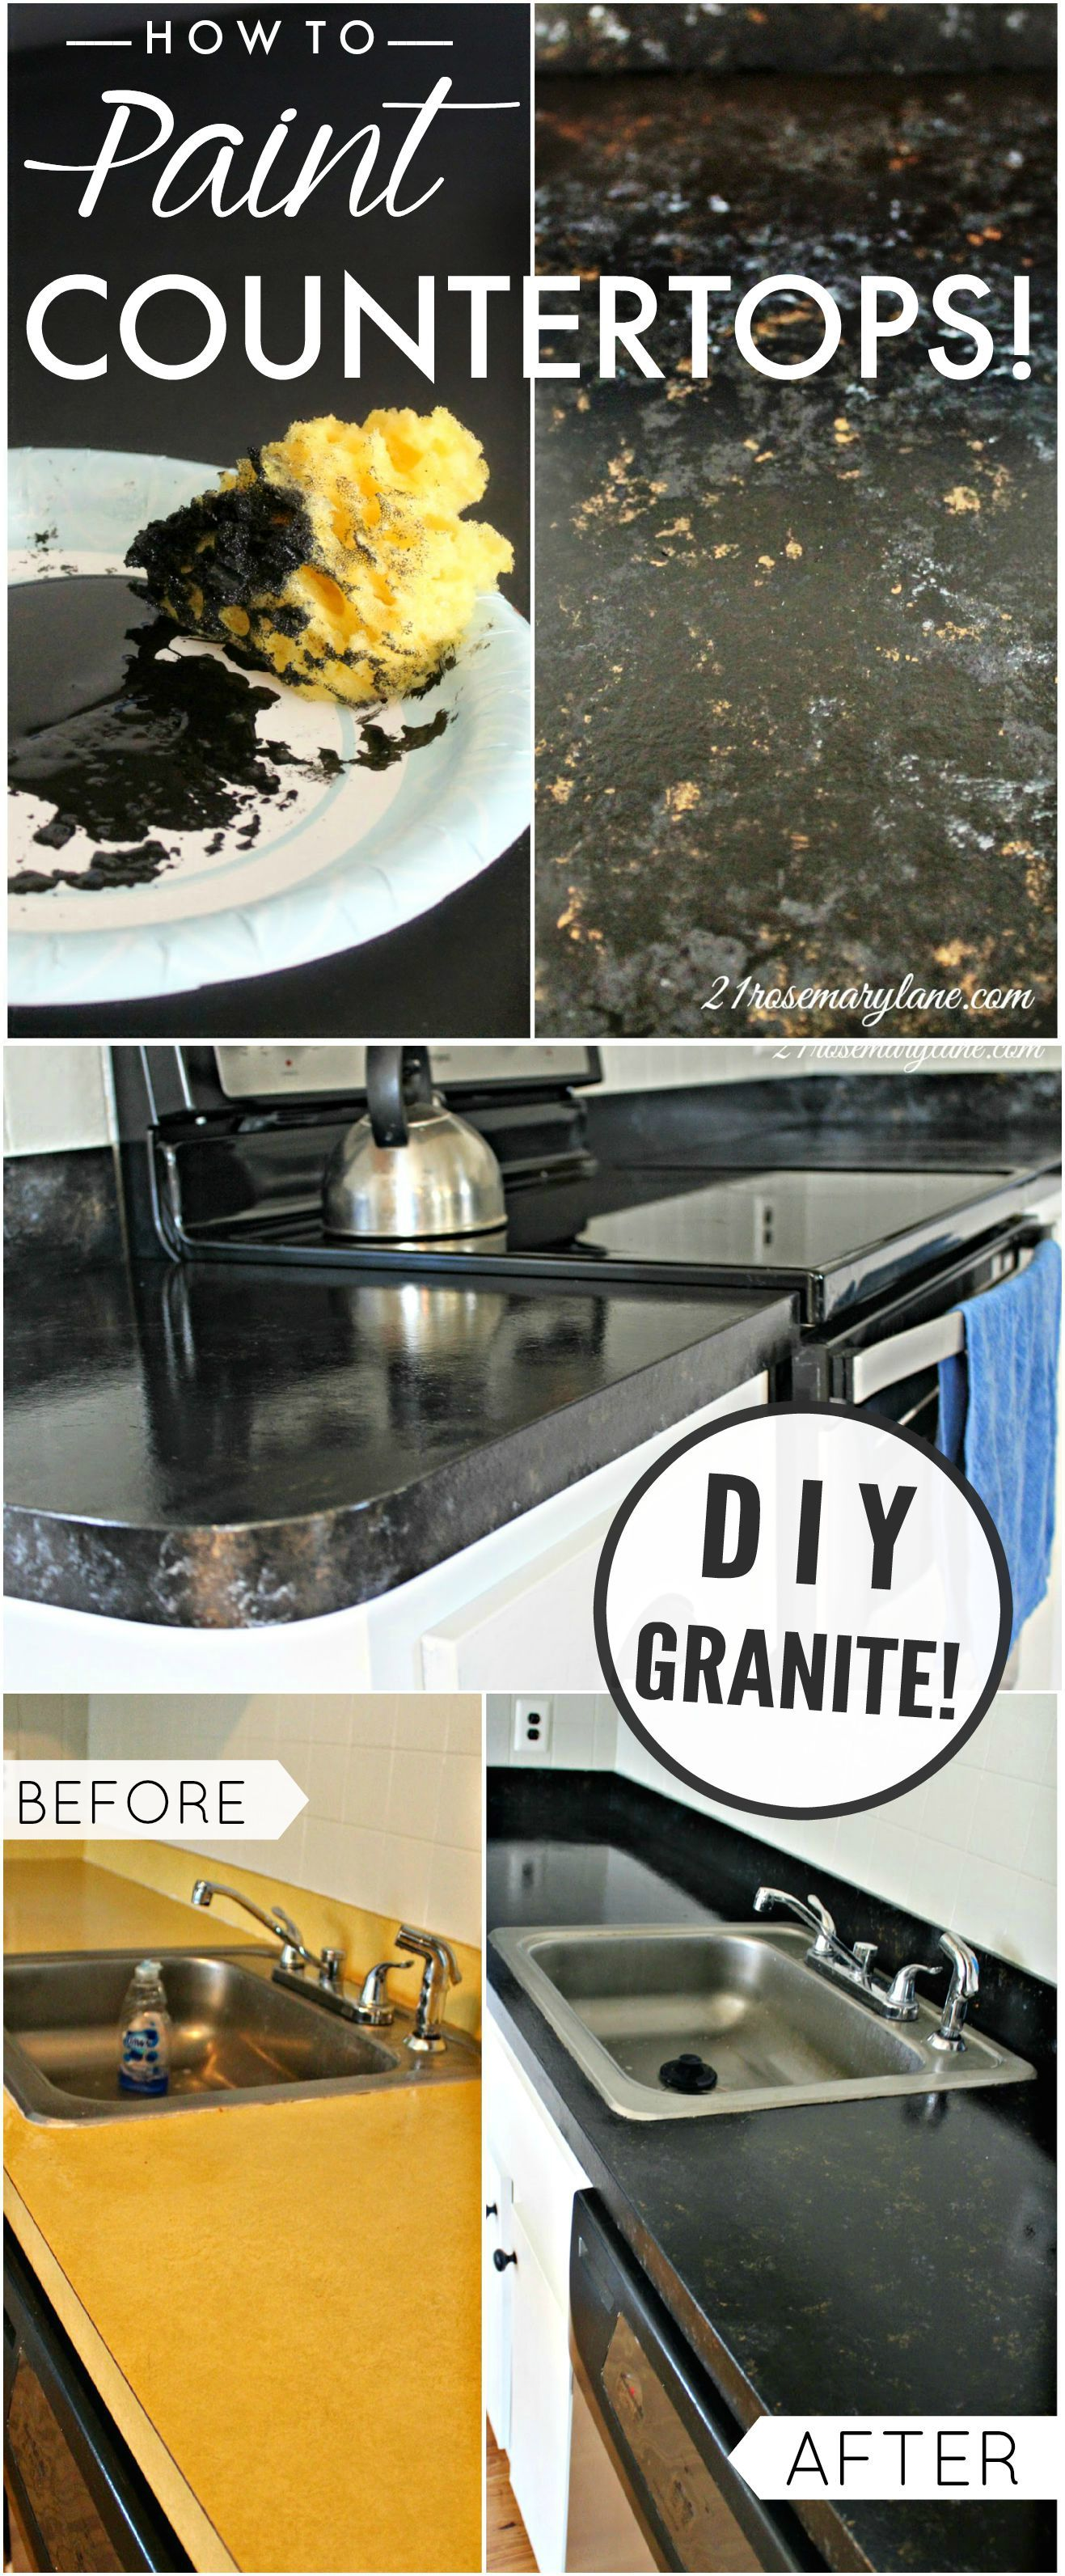 Paint Kitchen Countertops To Look Like Granite How To Paint Your Countertops To Look Like Granite Marble With